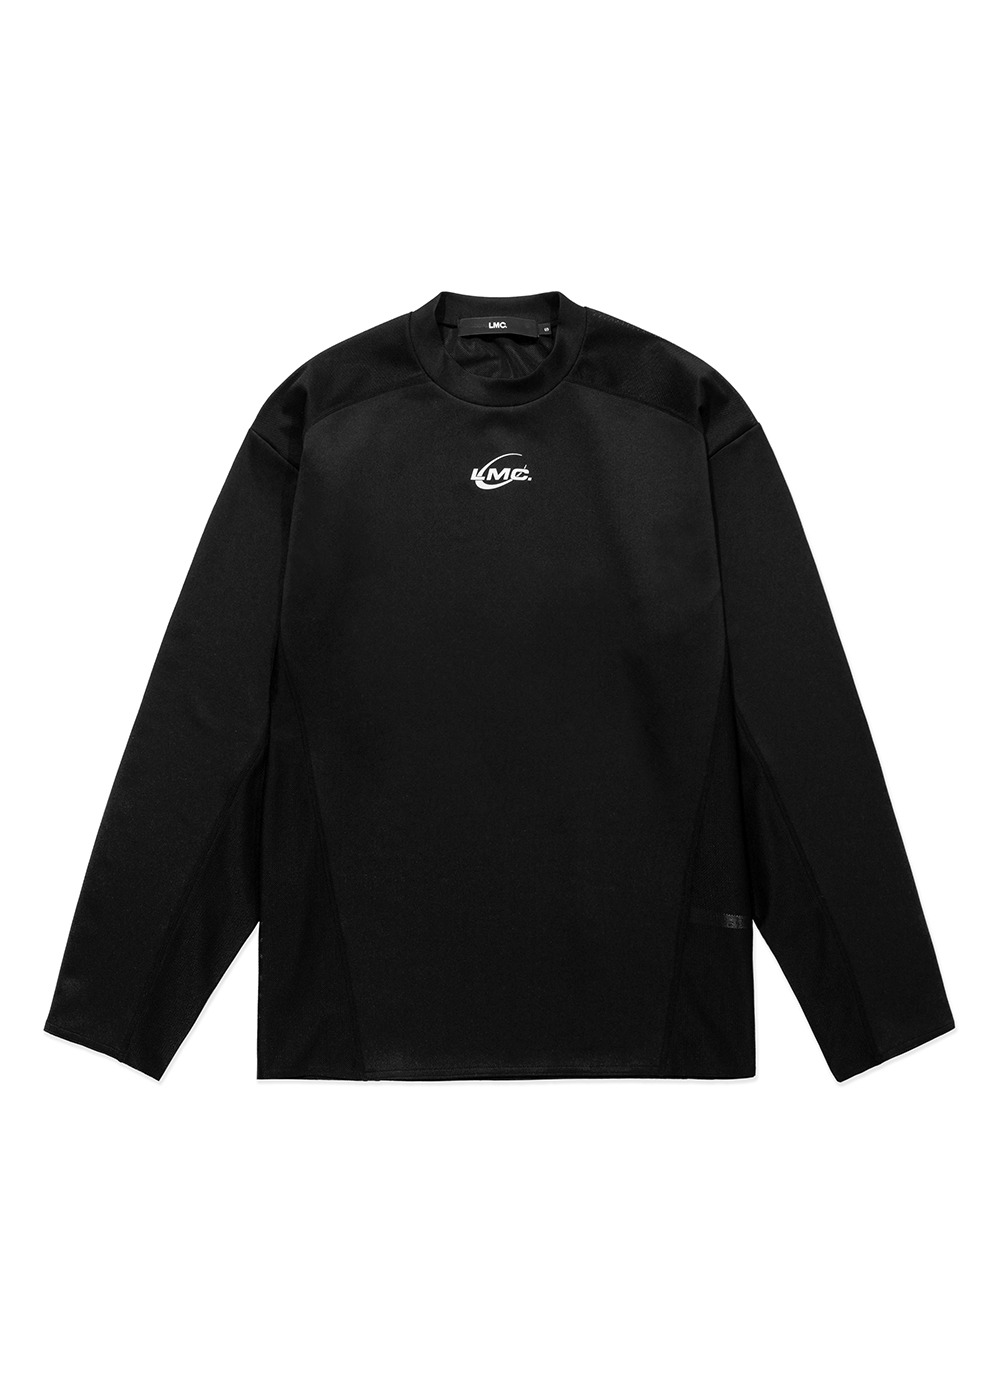 LMC CURVED LINE LONG SLV TEE black